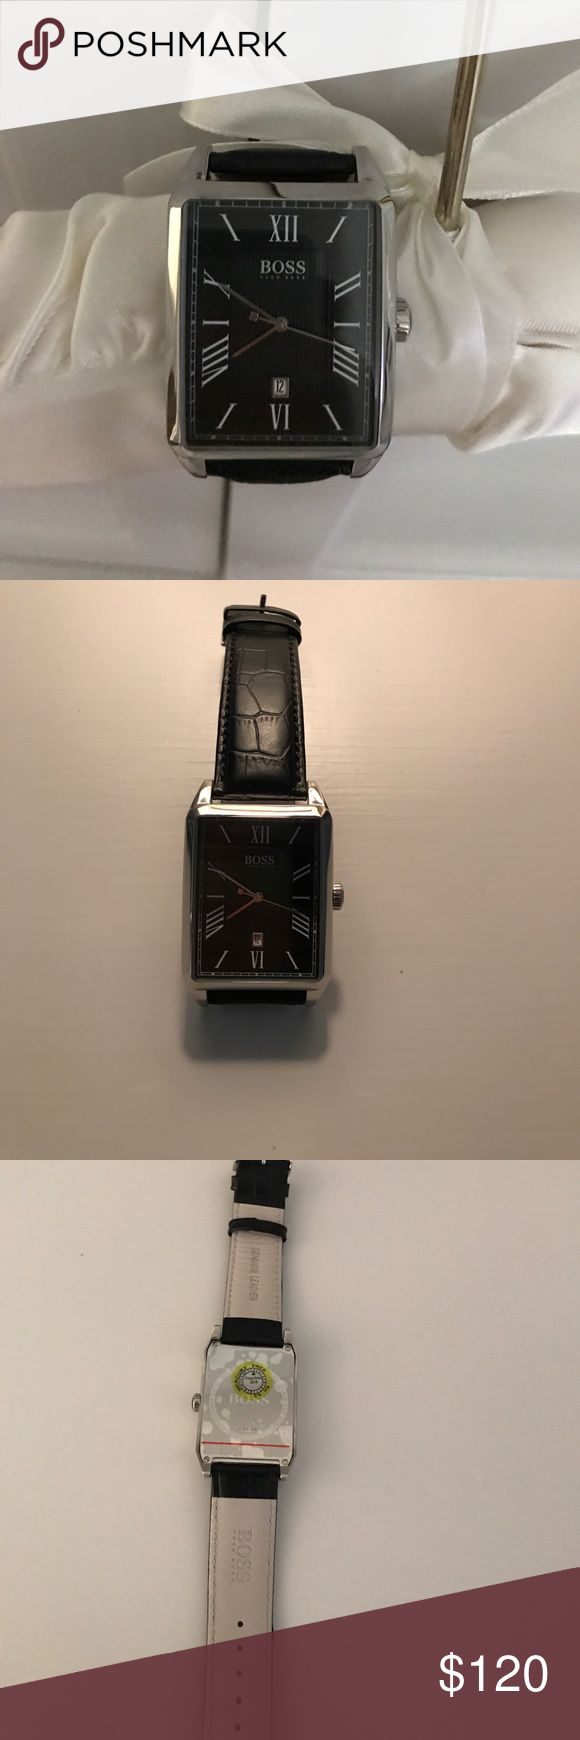 Men's Hugo Boss watch NWOT Hugo Boss watch with black leather straps. Brand new - never worn - still with stickers on the back! Hugo Boss Accessories Watches